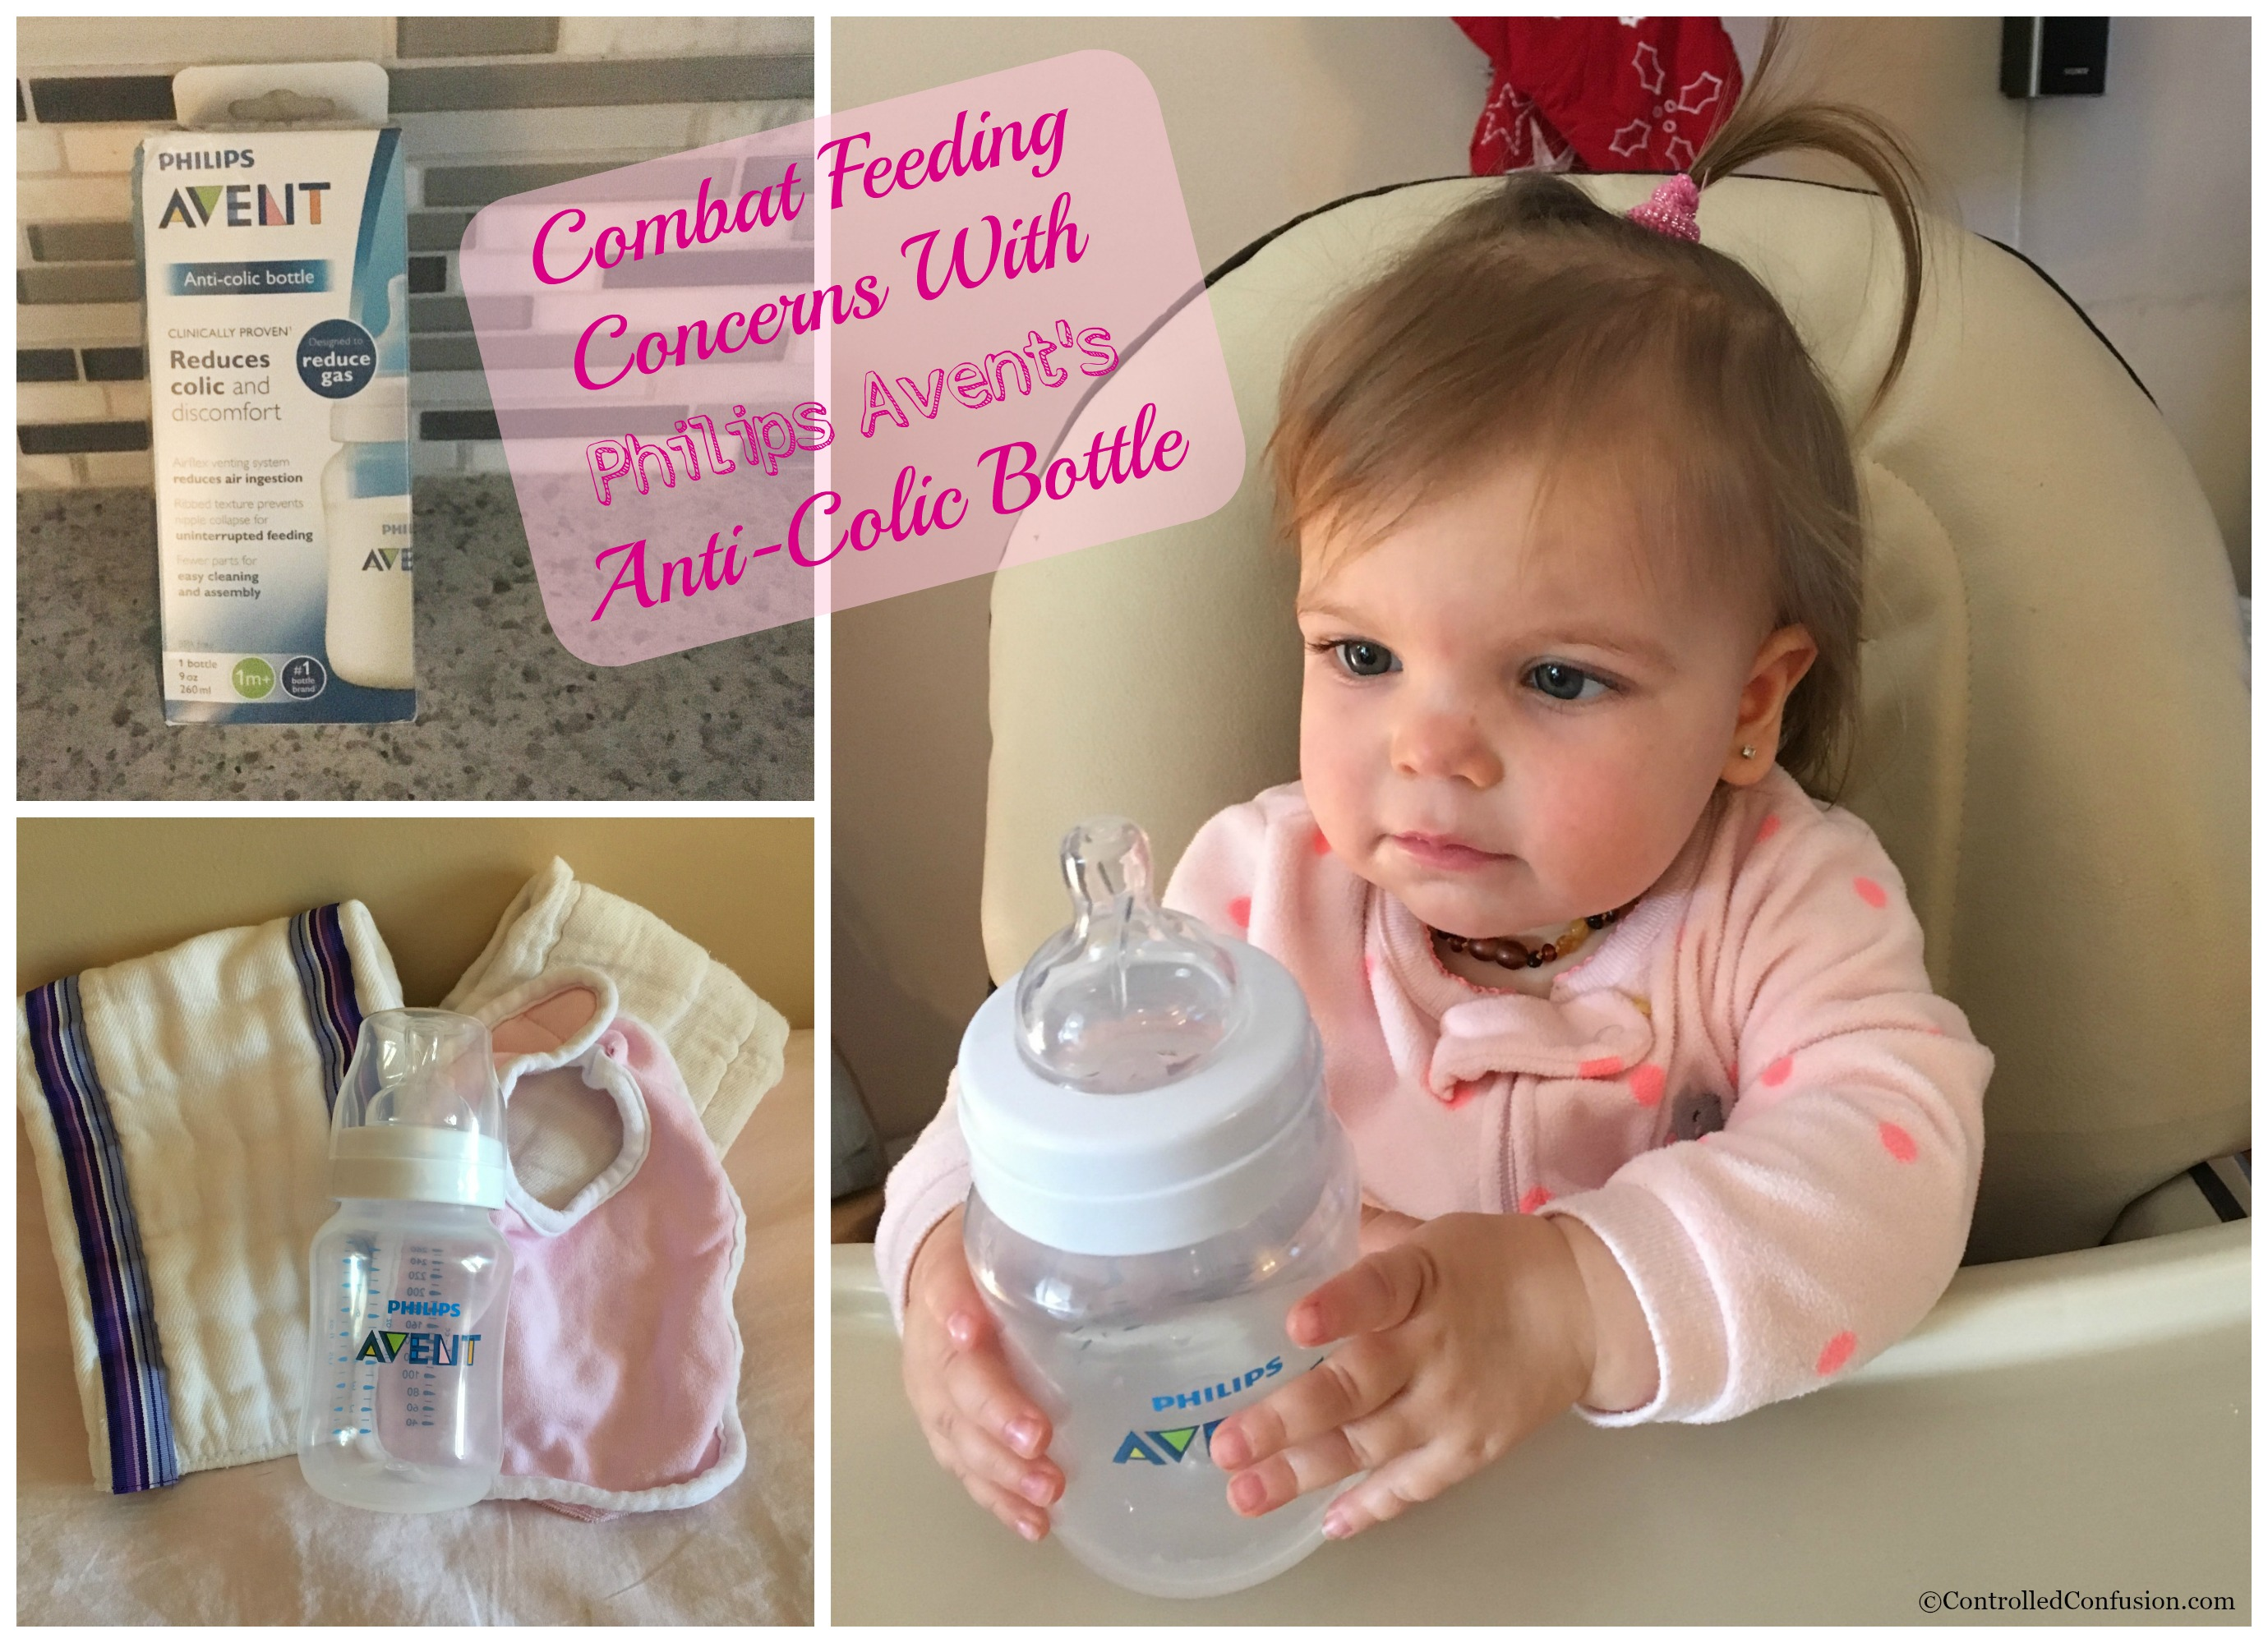 Combat Feeding Concerns With Philips Avent's Anti-Colic Bottle